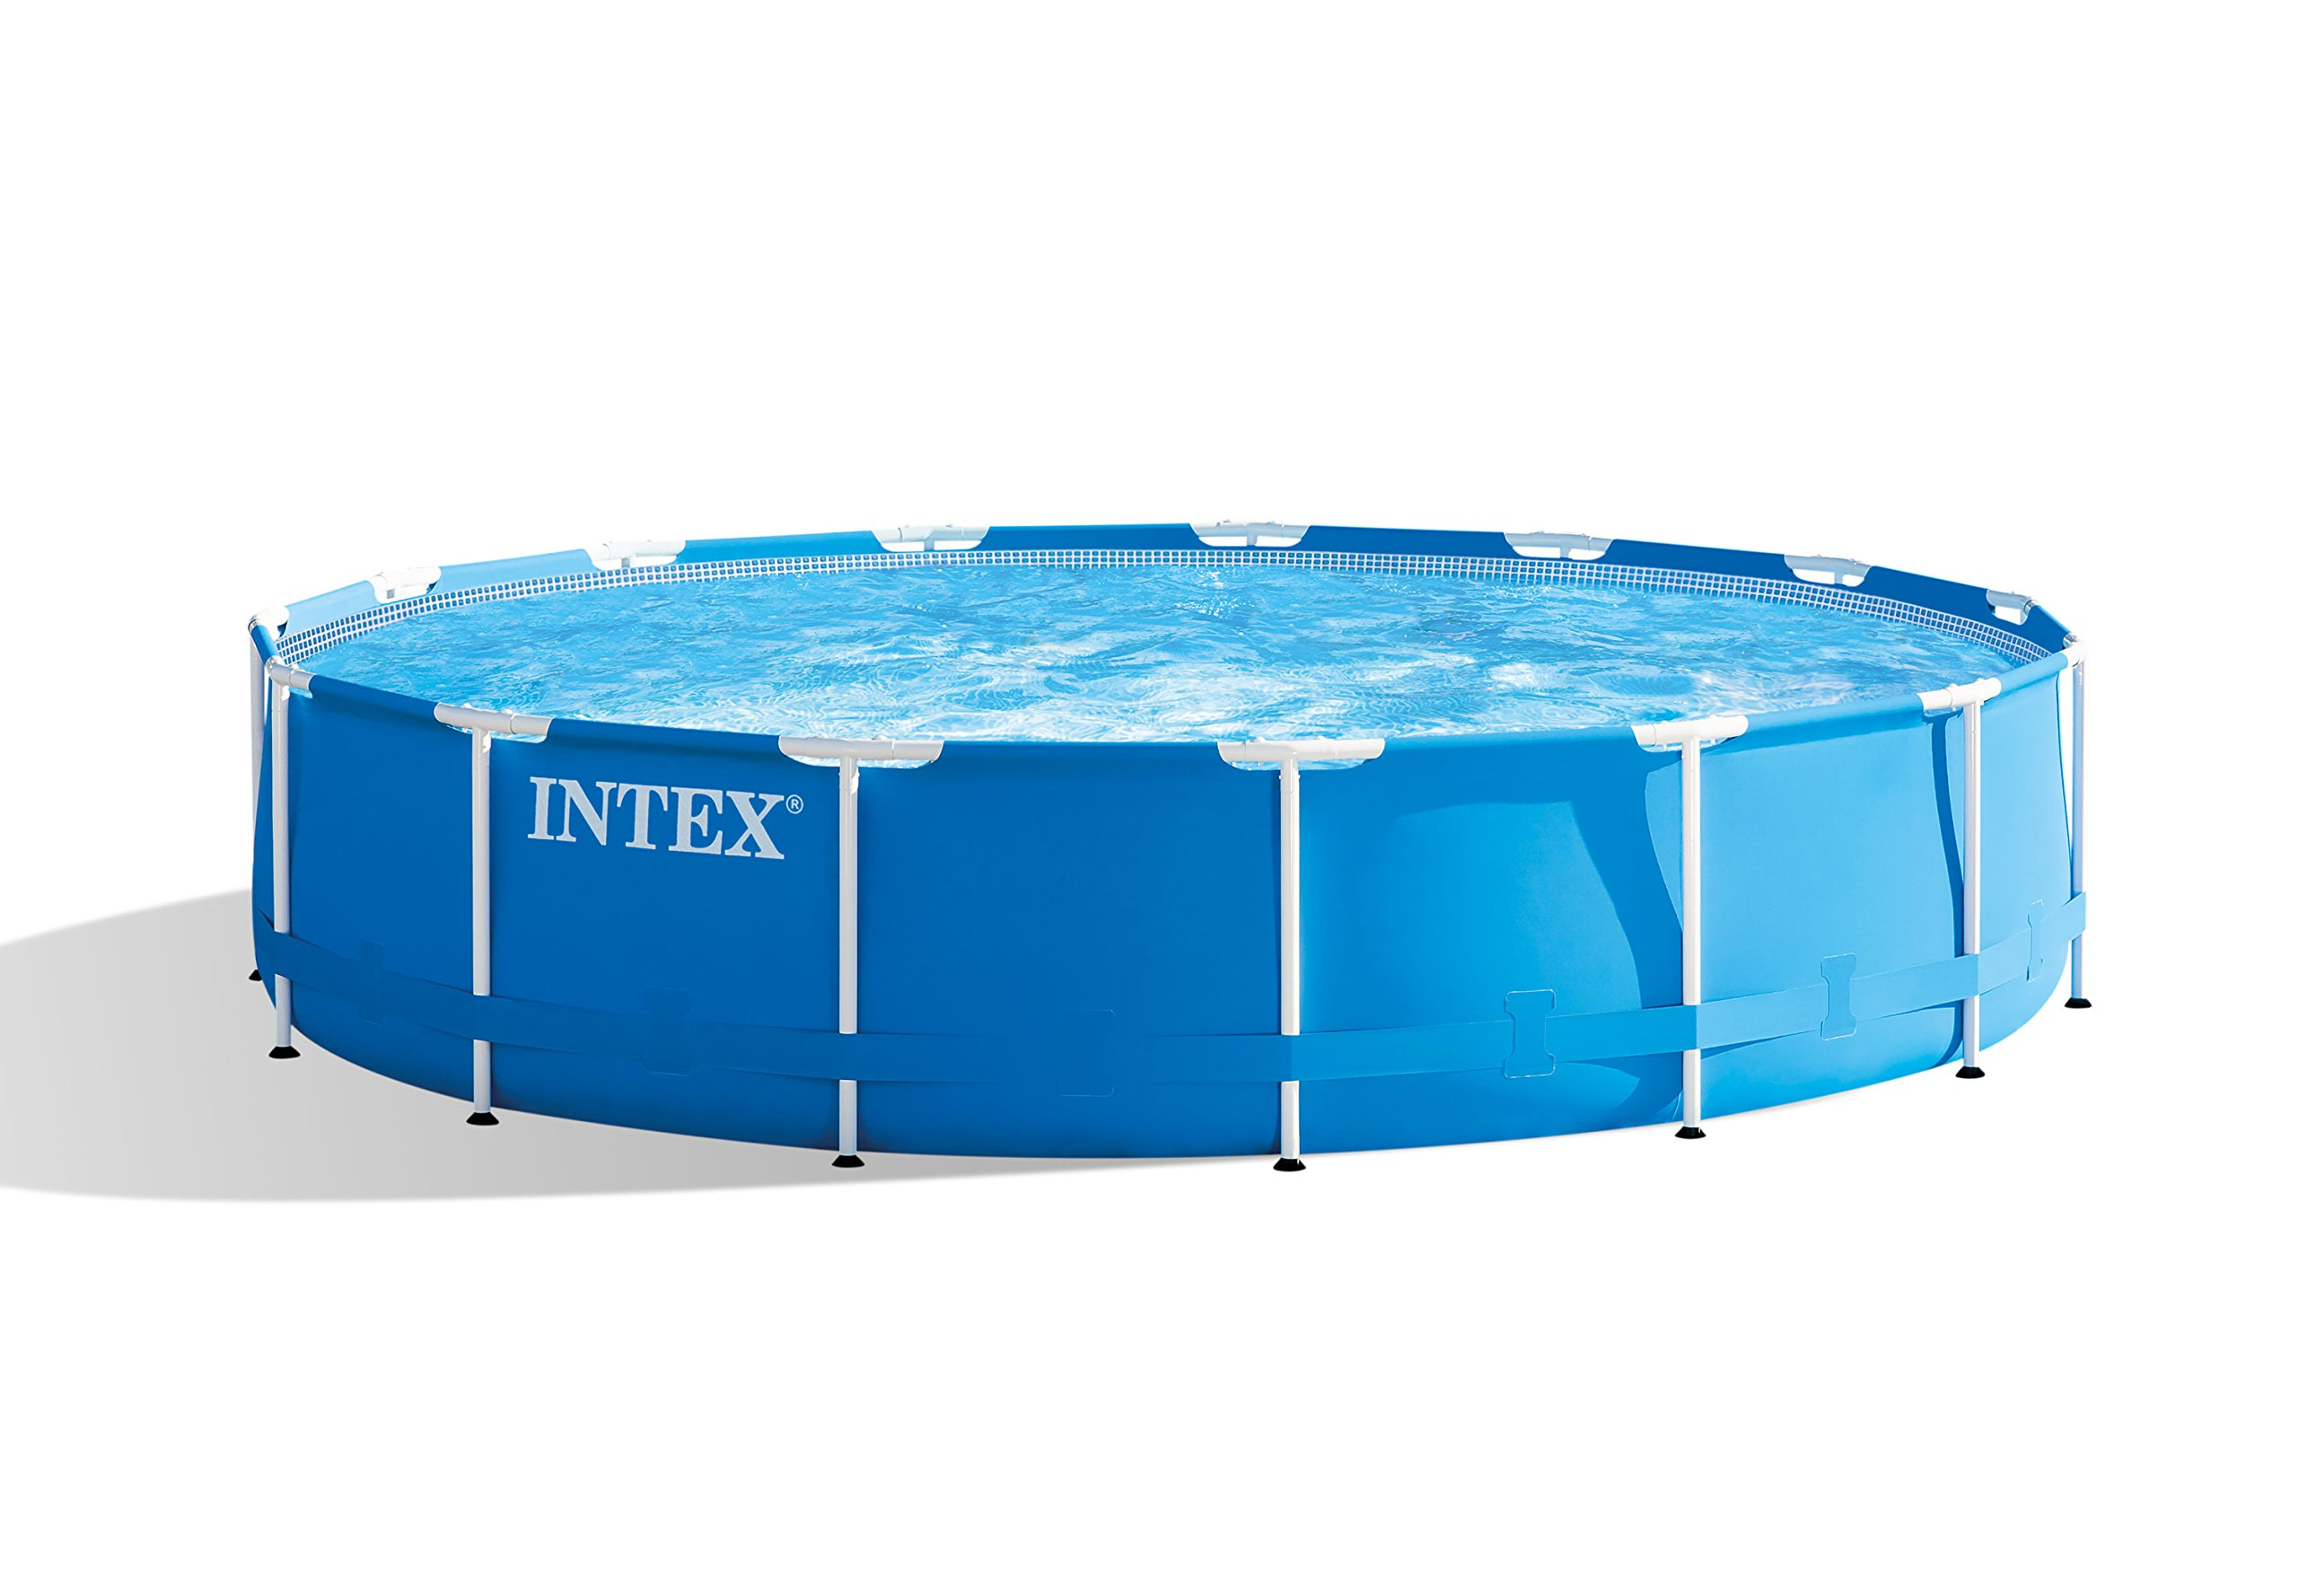 Intex Metal Frame Pool Set - Piscina, 457 x 84 cm, Color Azul ...